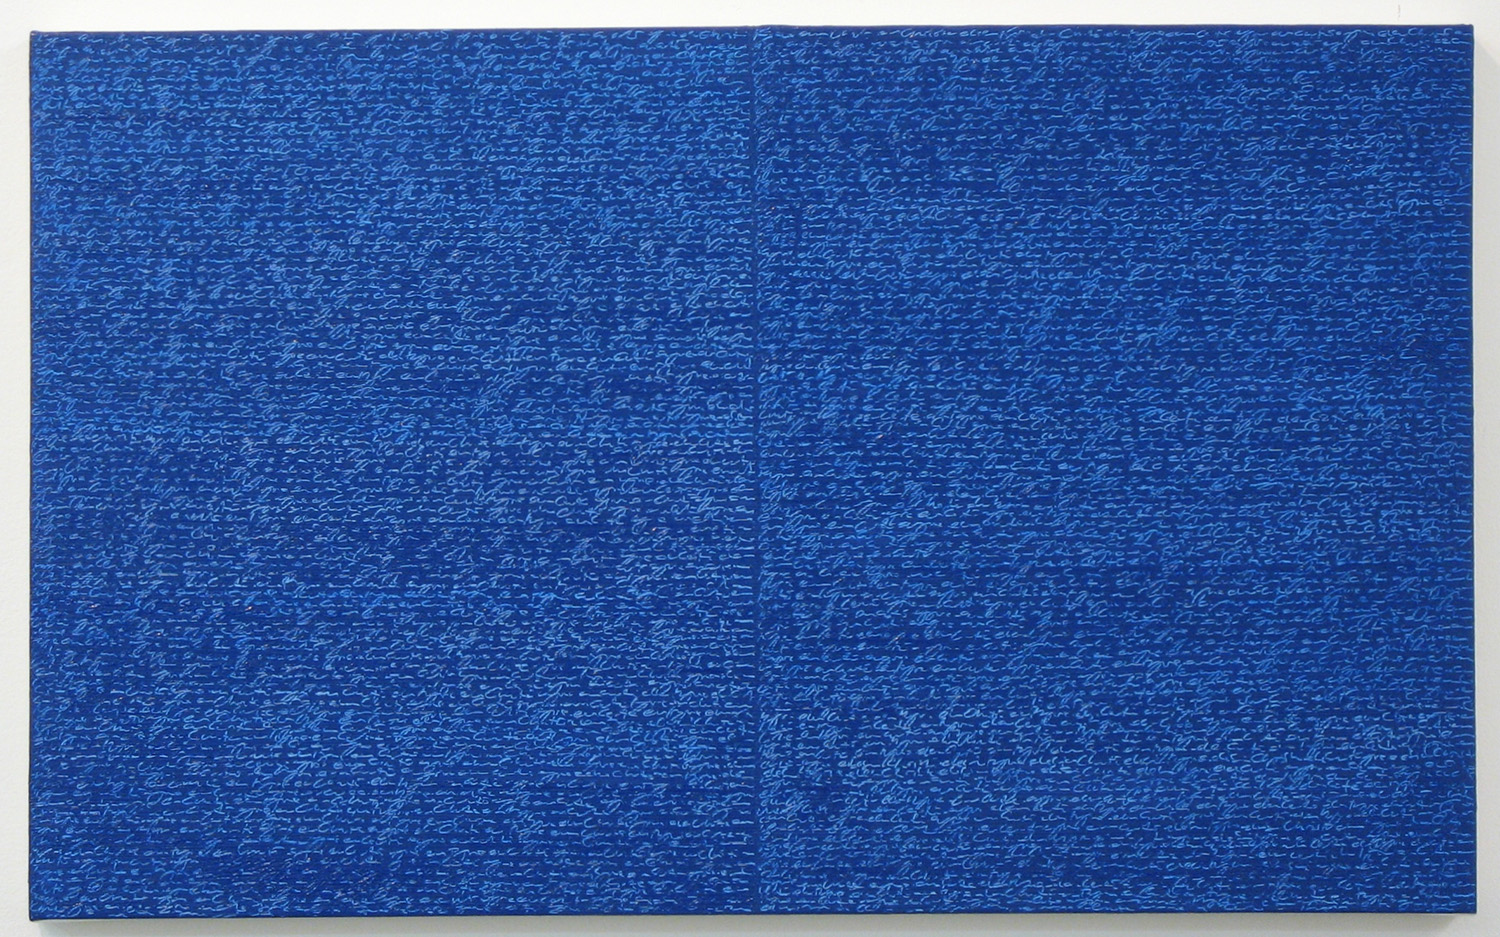 Open Book -blue- blue-<br>oil and amber on canvas over panel, 37 x 60 cm, 2008